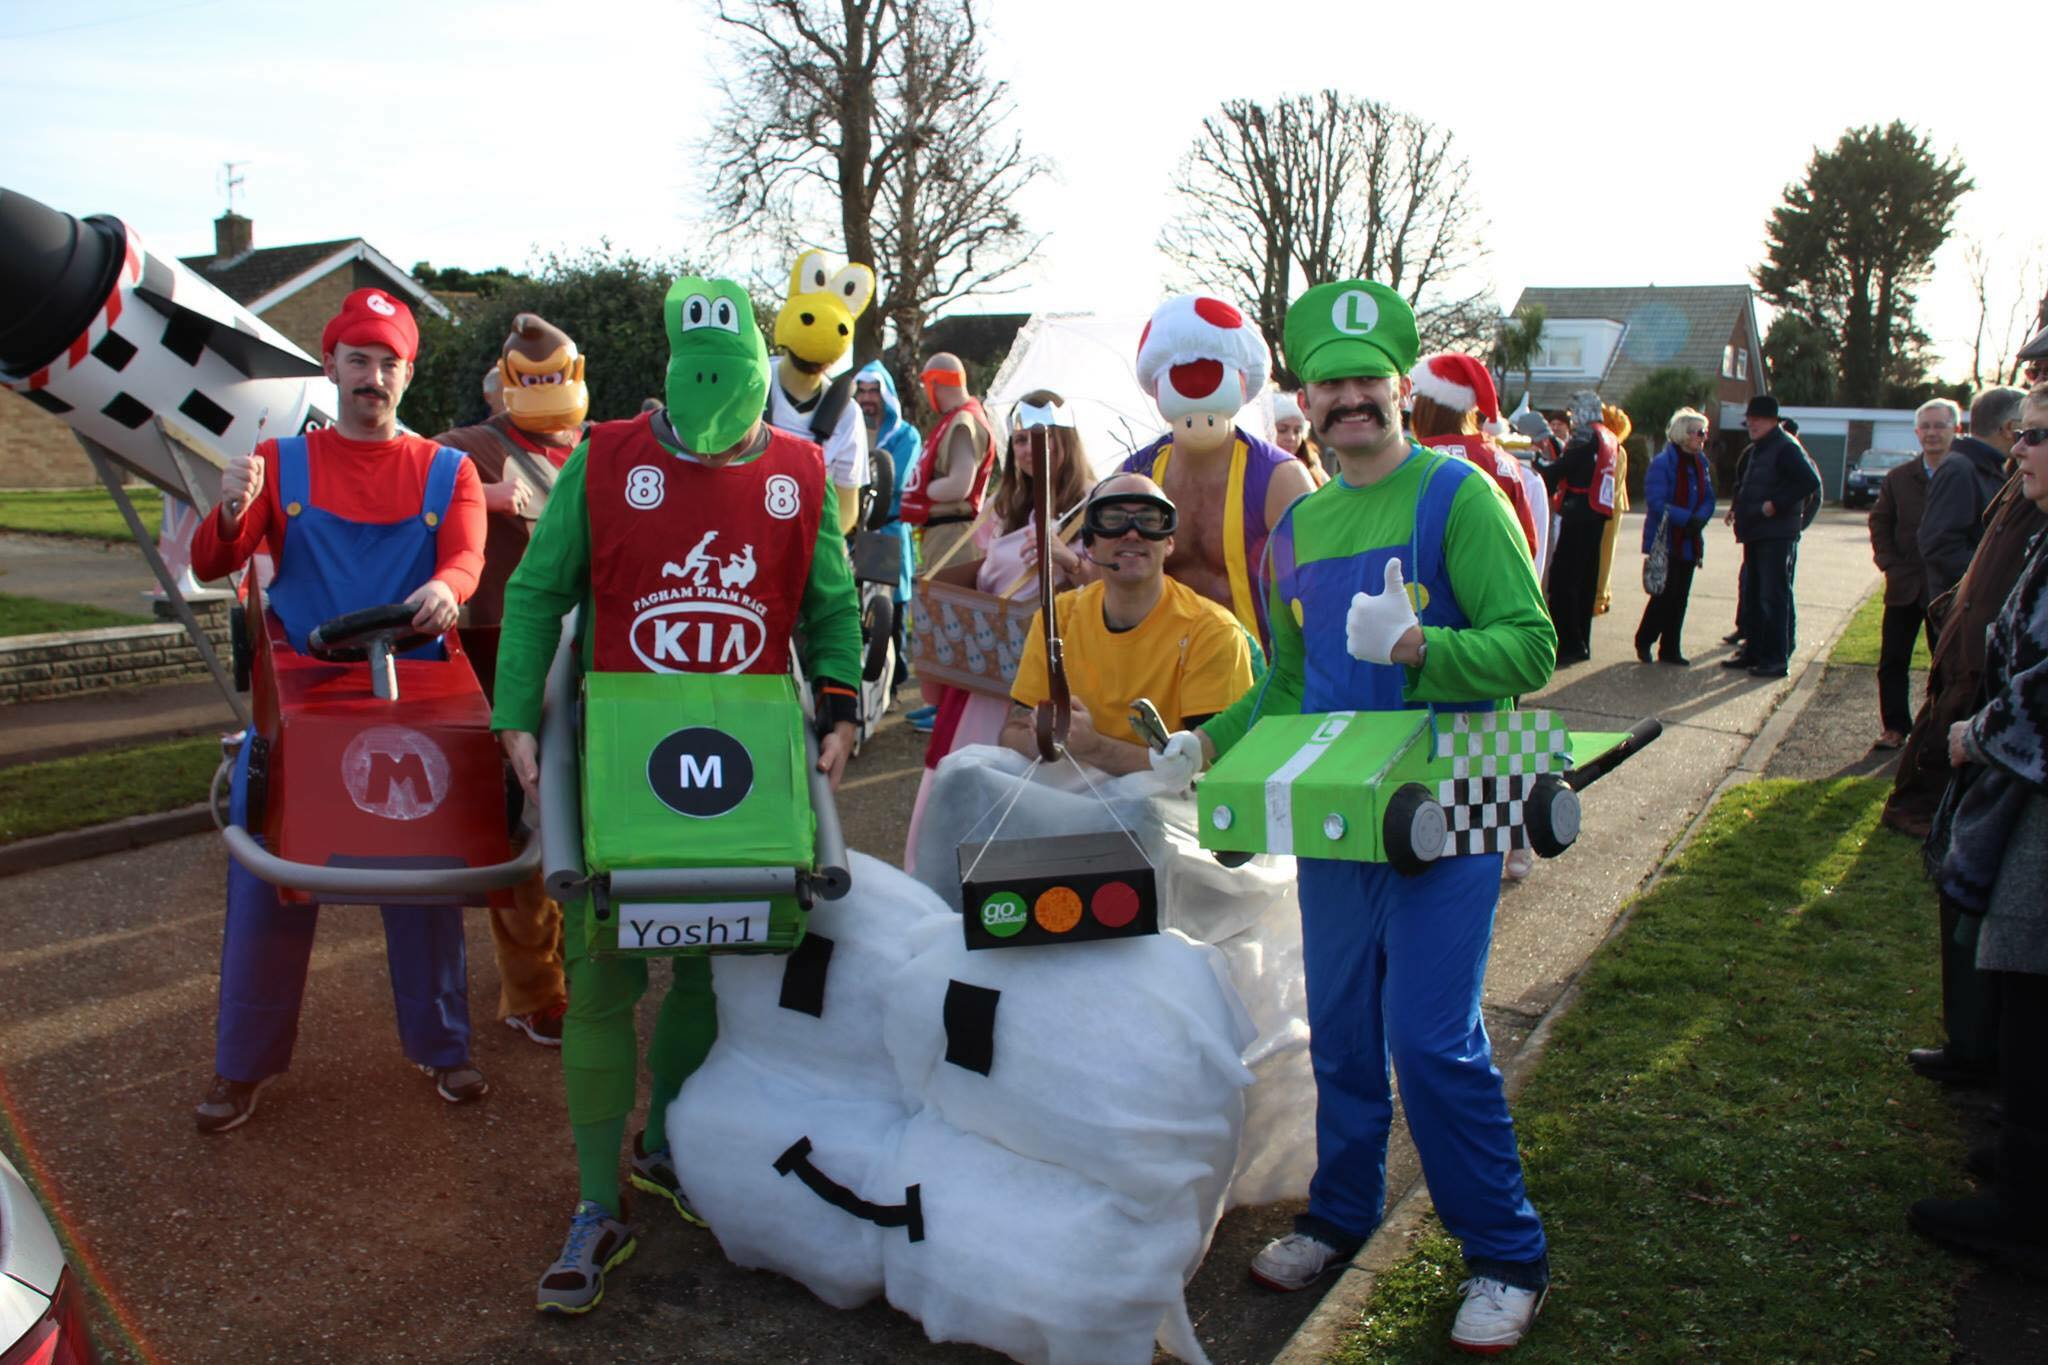 Covers Bognor Regis to support  Pagham Pram Race for third year